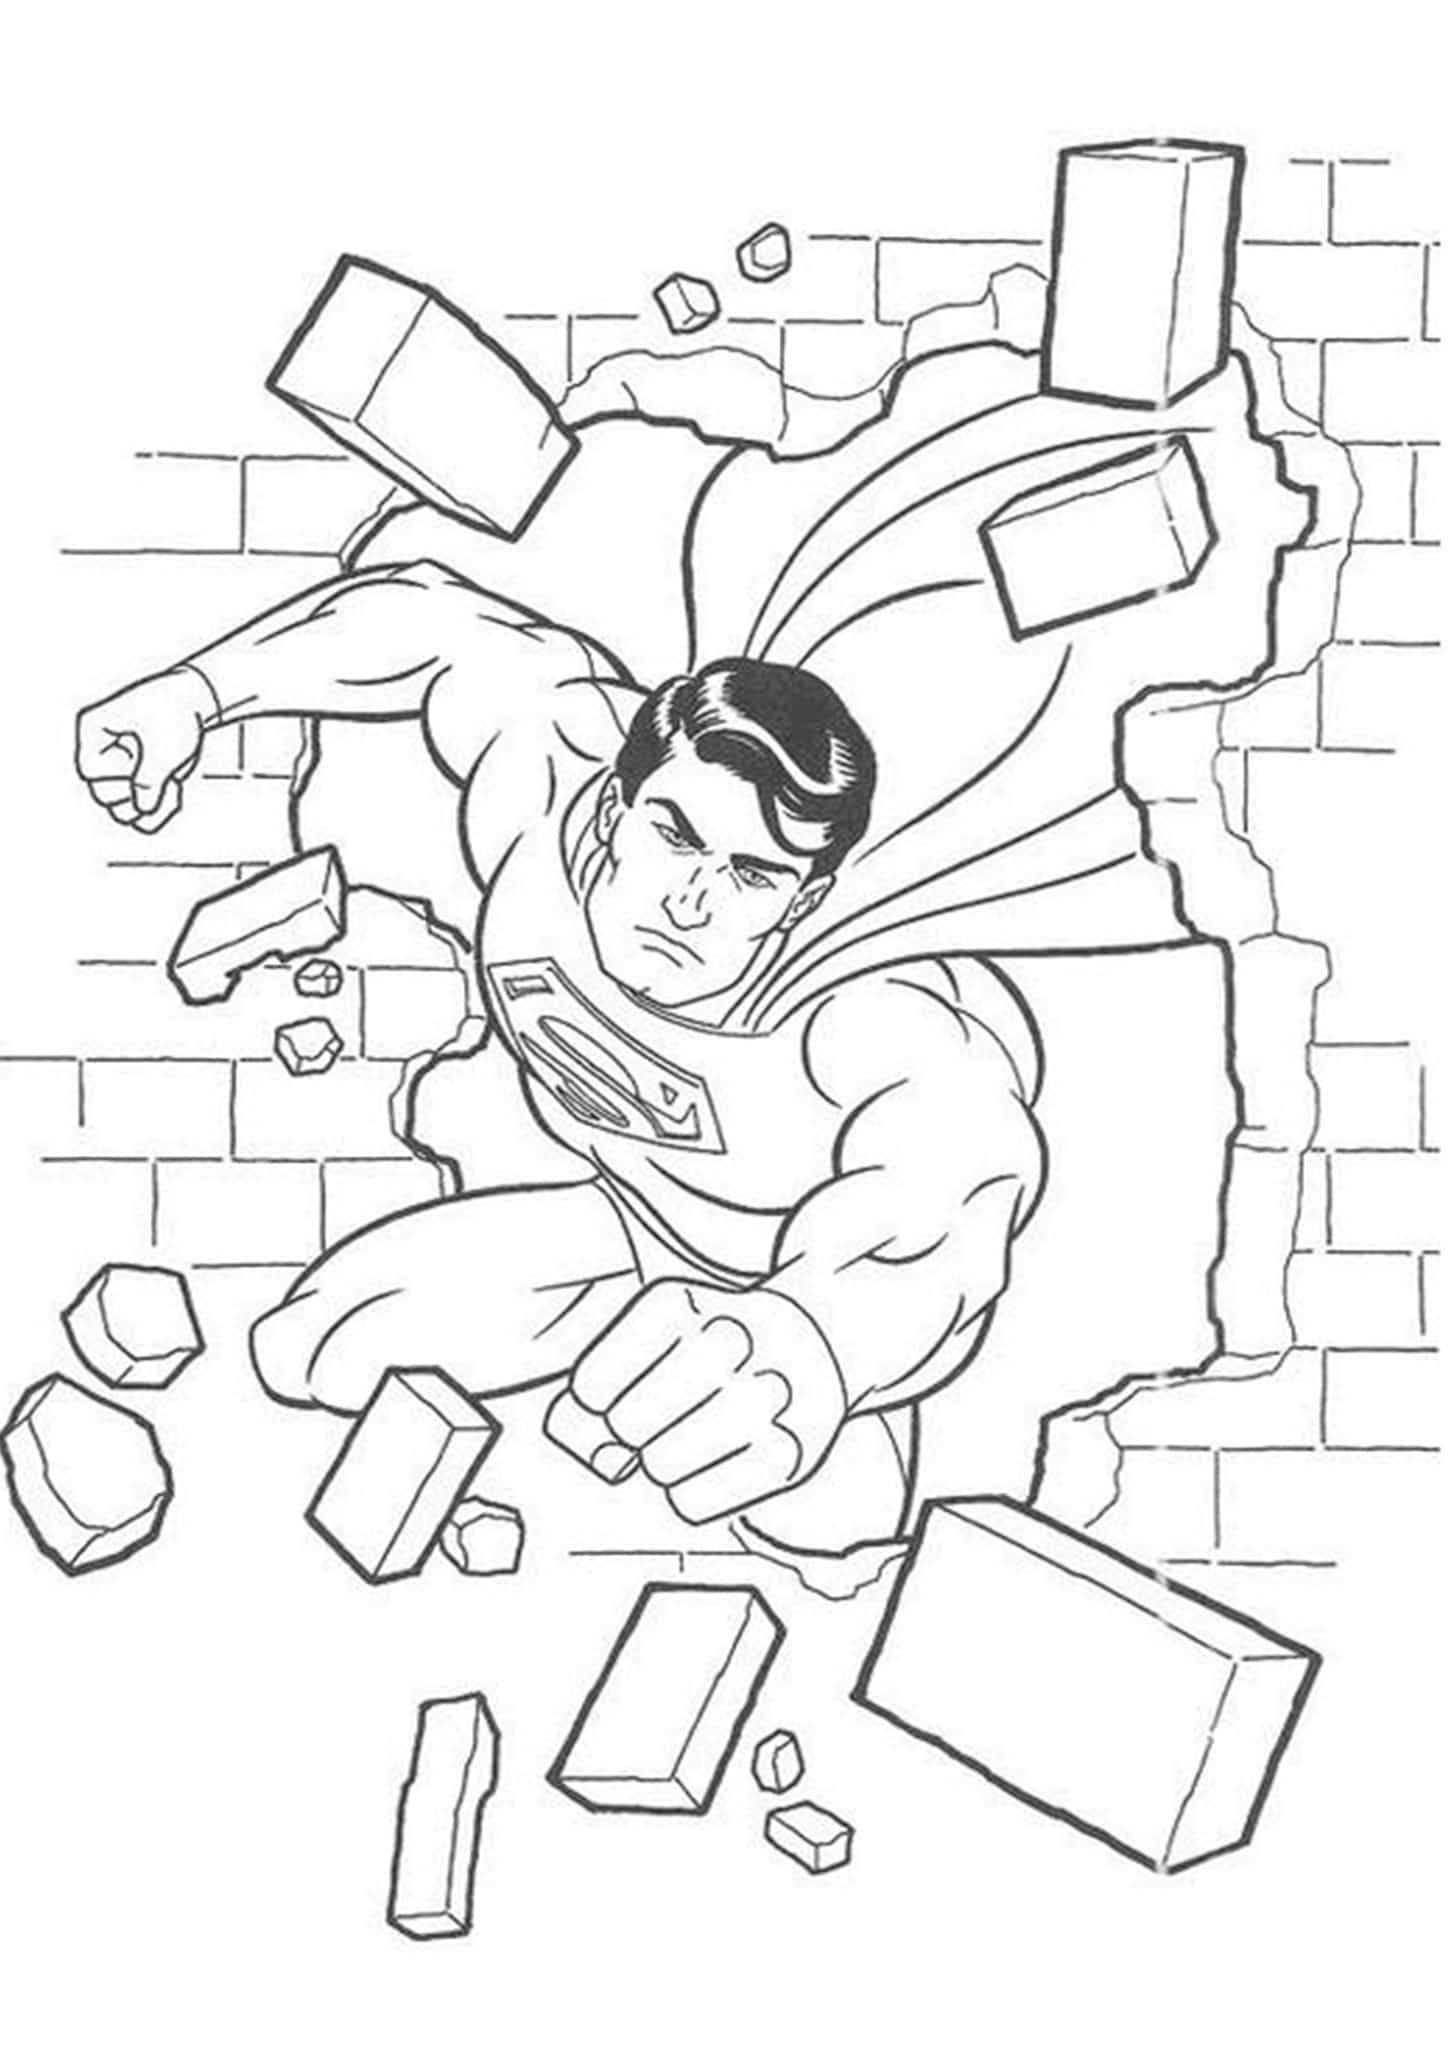 Free easy print superman coloring pages tulamama, superhero coloring pages